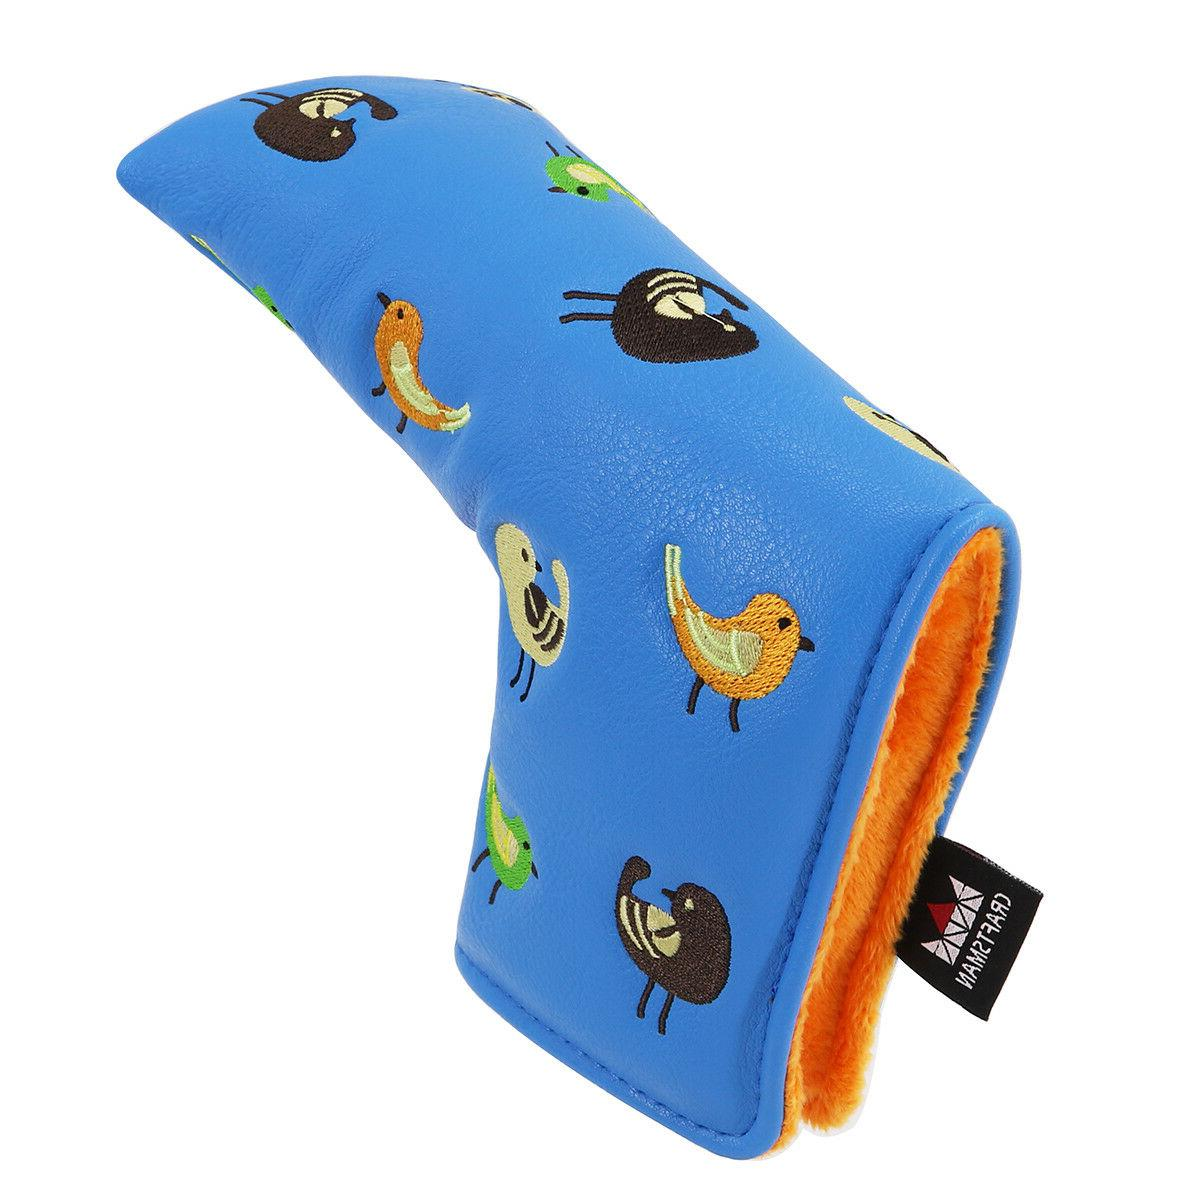 Blue Cover Headcover Yes Ping Putters